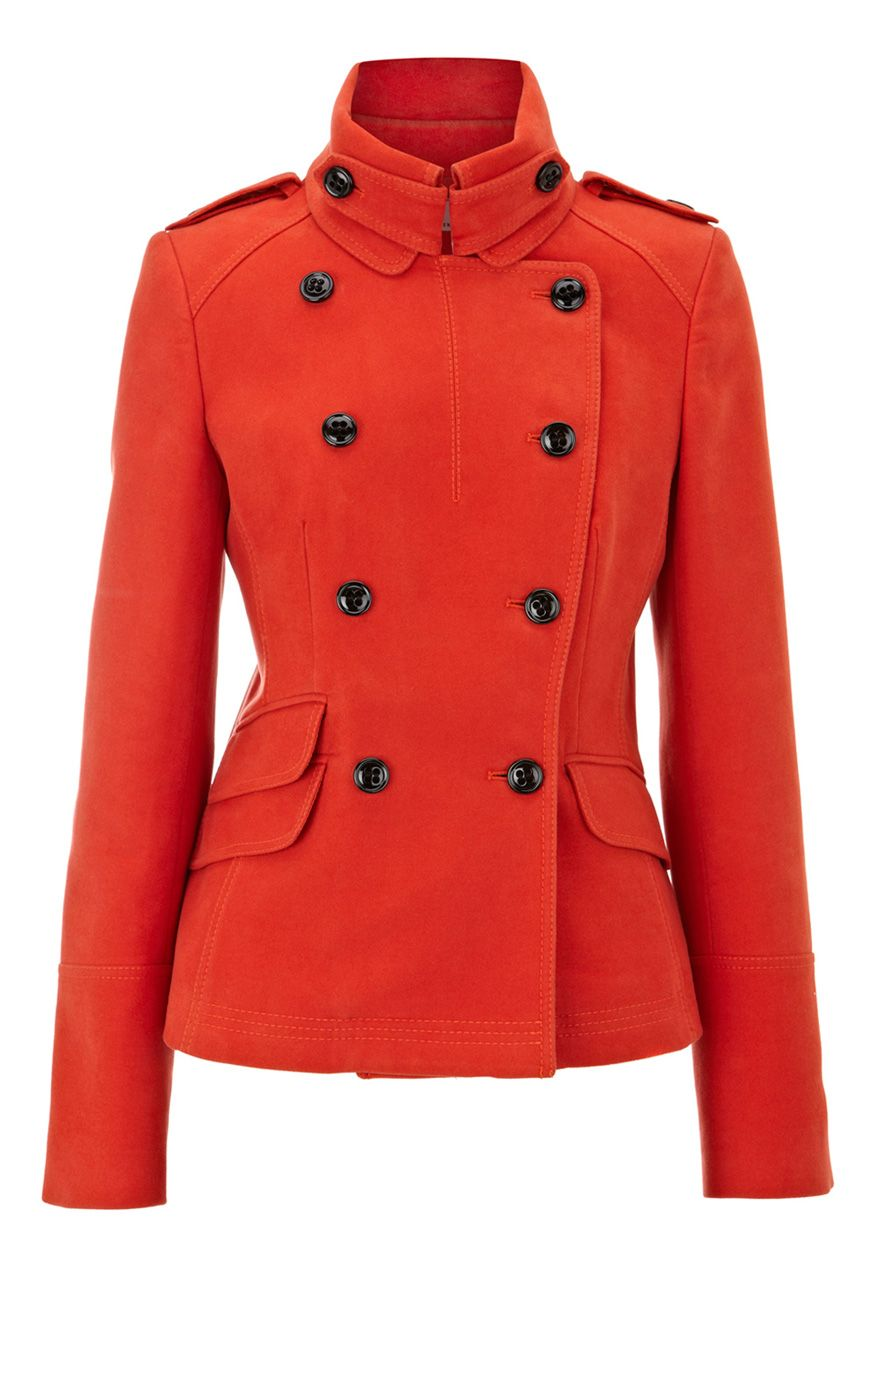 Karen Millen Knitwear Modern Military Moleskin Jacket in Red